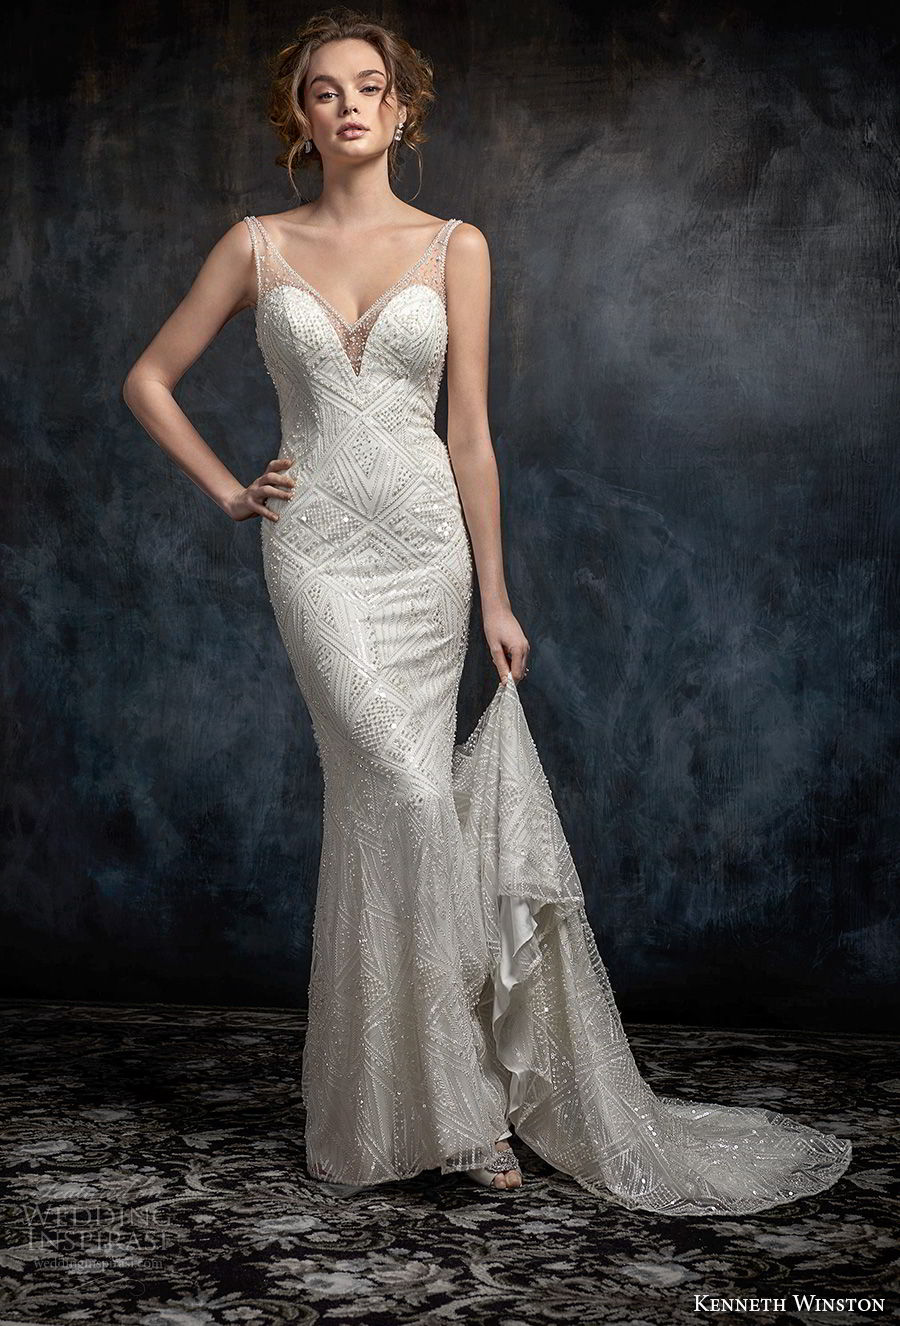 kenneth winston fall 2017 bridal sleeveless thin strap v neck full embellishment elegant sheath wedding dress open scoop back sweep train (48) mv